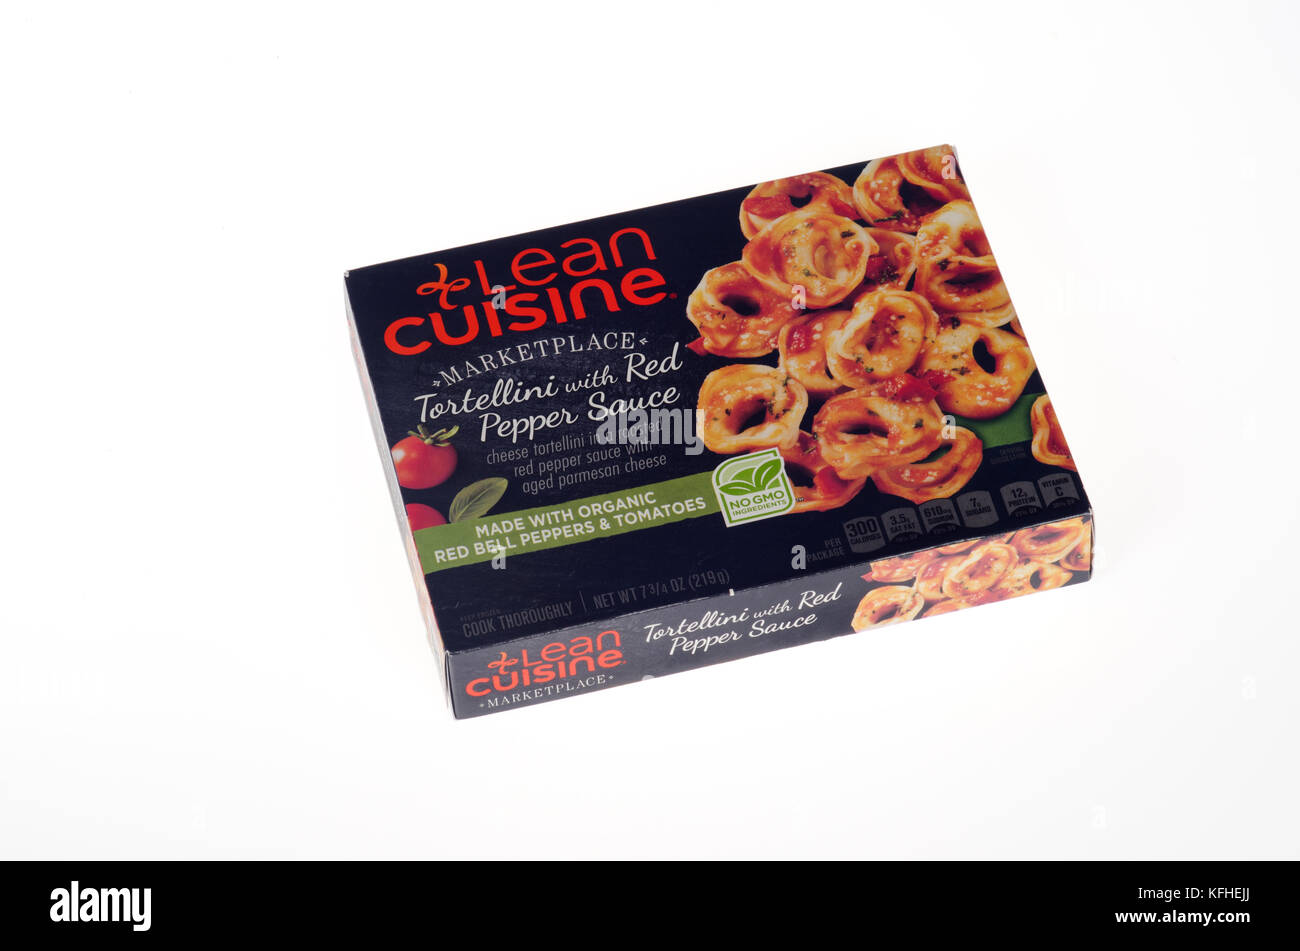 Lean Cuisine frozen meal of Tortellini in Red Pepper Sauce box - Stock Image